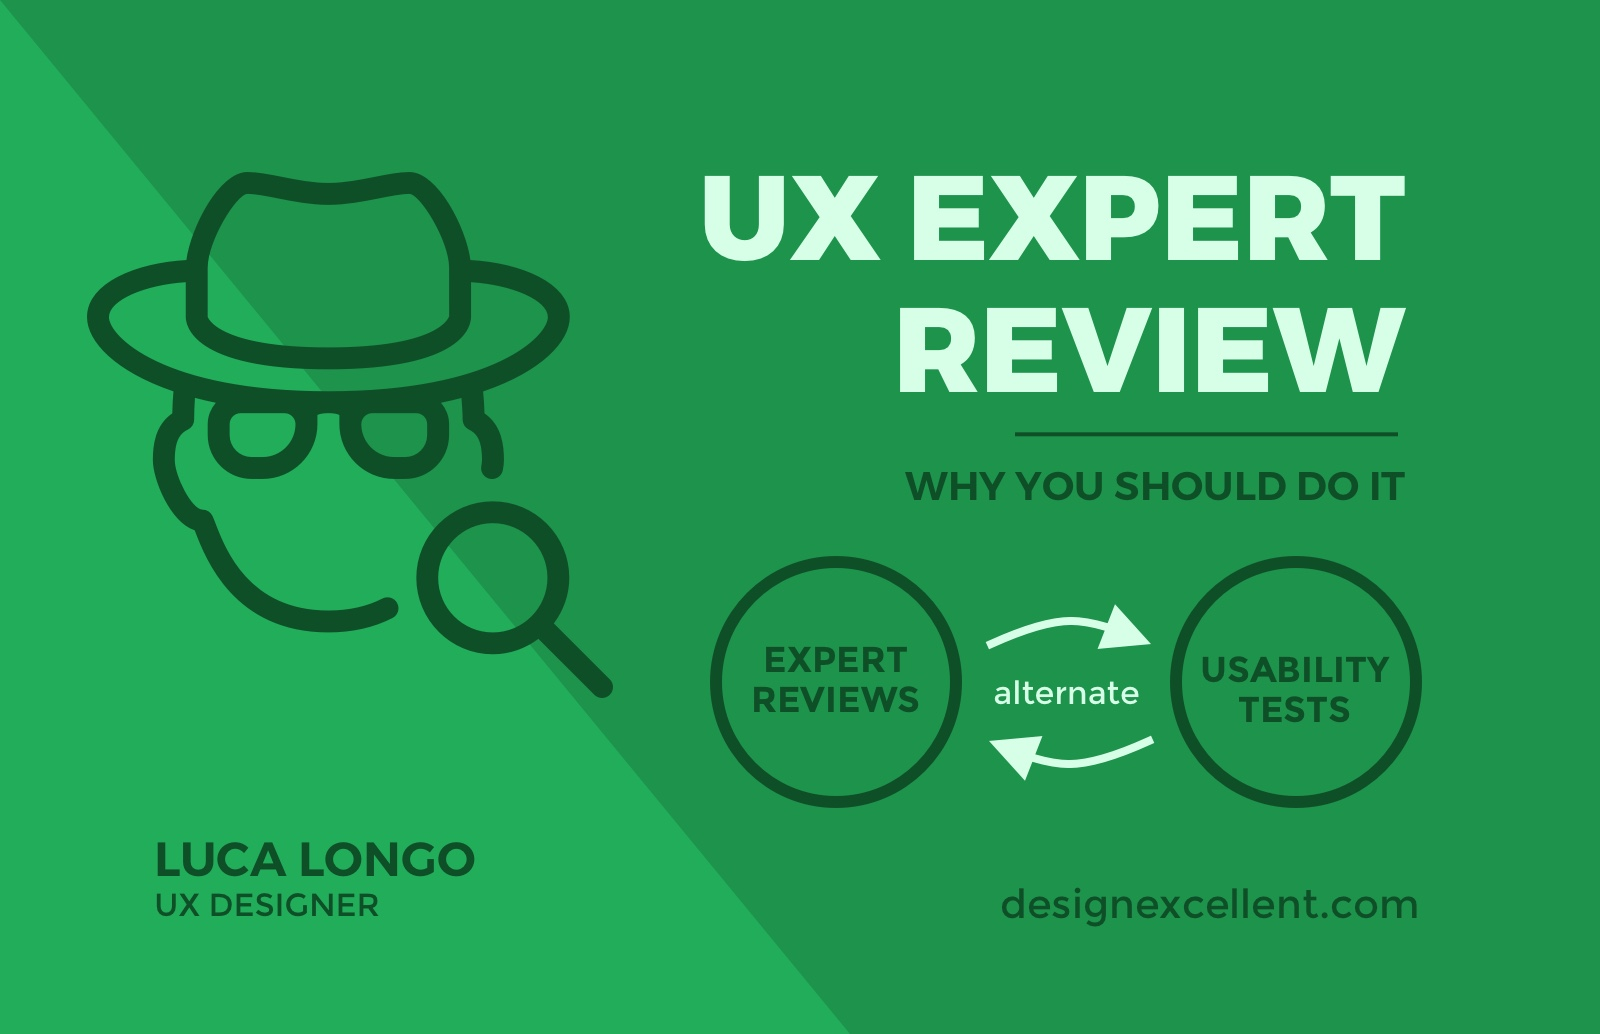 UX Expert Reviews - Why you should do it 1